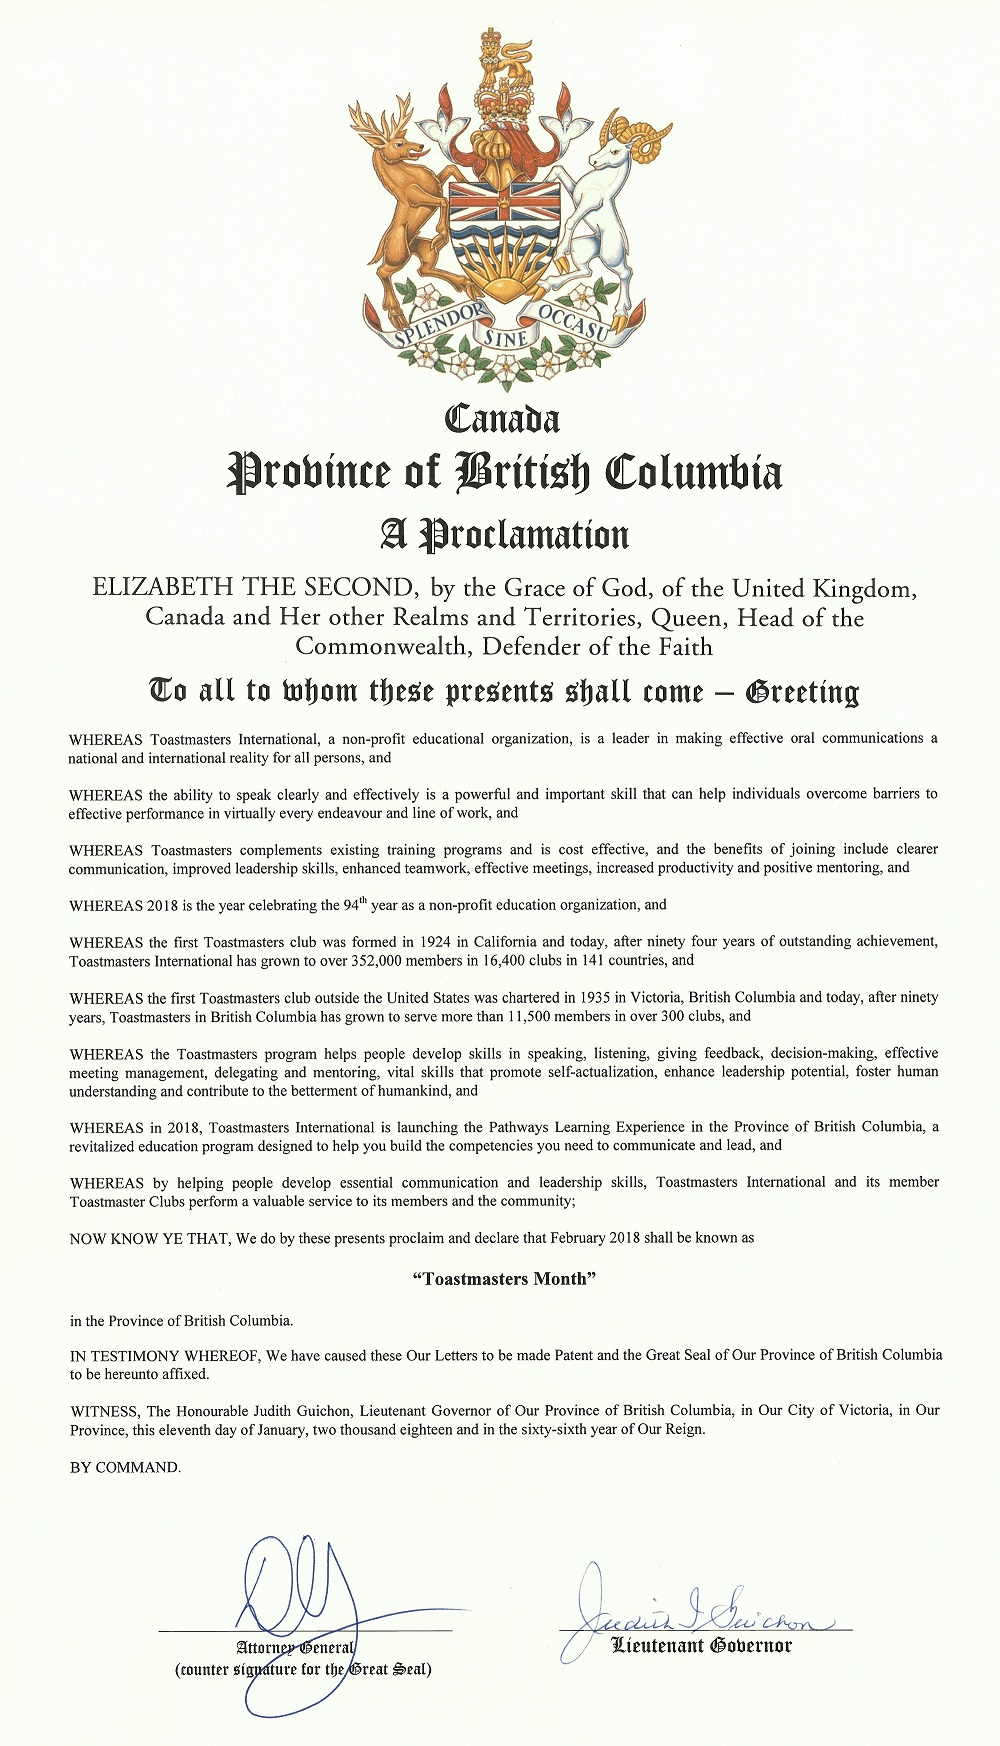 "Province of British Columbia Proclamation Proclaiming that February 2018 shall be known as ""Toastmasters Month"" in the Province of British Columbia!"